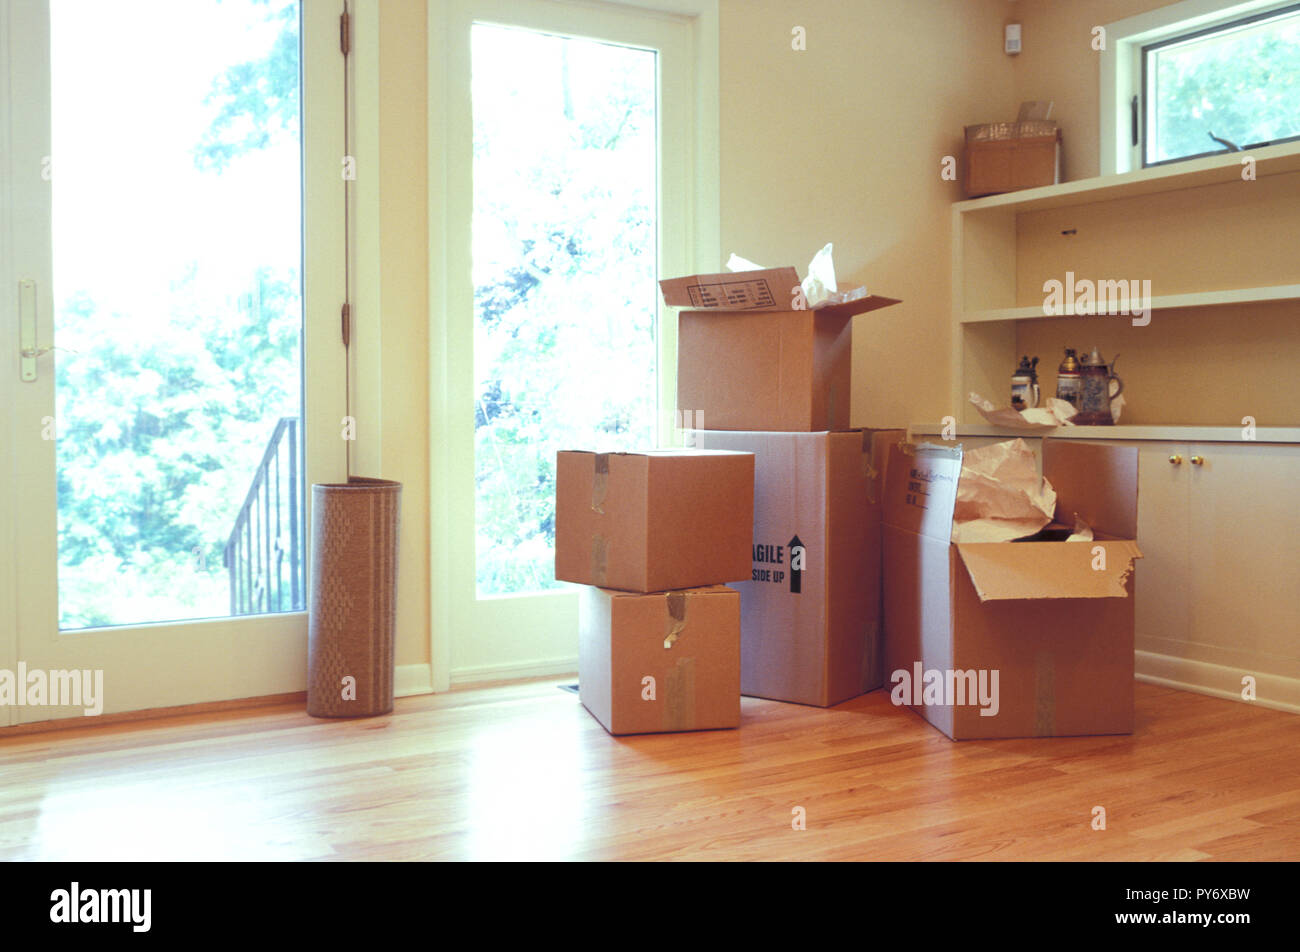 Cardboard packing boxes in suburban home on moving day, USA - Stock Image